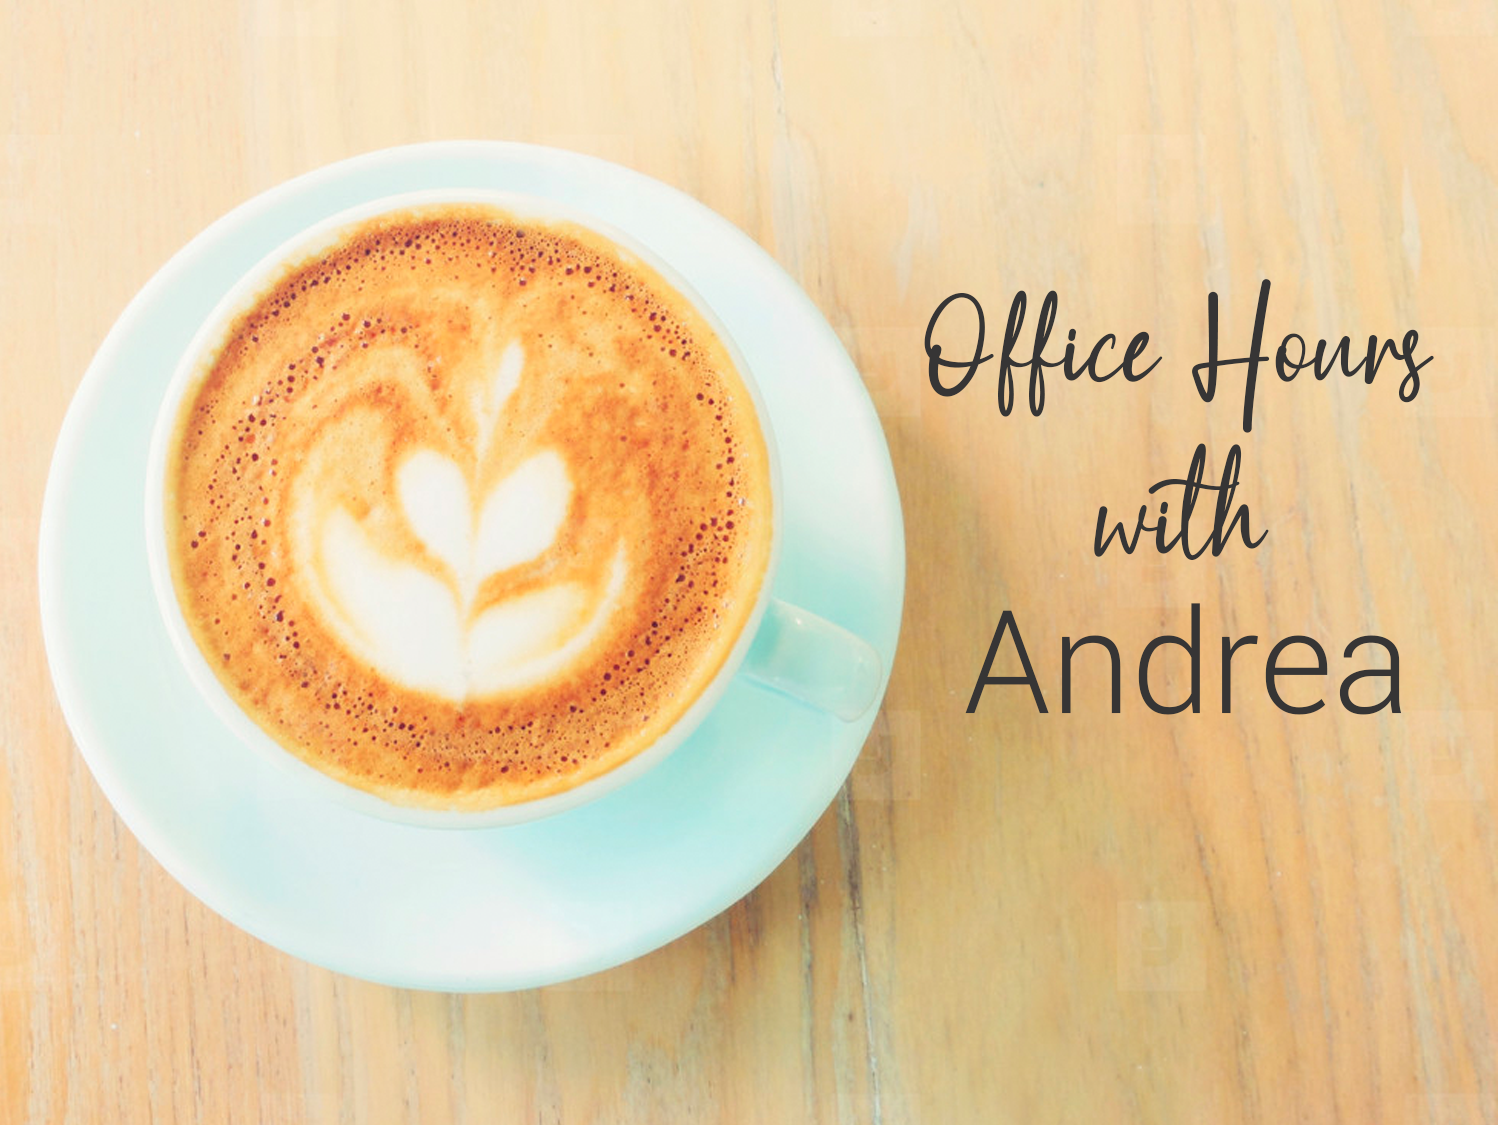 Office Hours with Andrea - If you have questions about Christianity, Christian living or just want to talk, you can schedule a time to connect with Andrea! Click here to schedule a time to connect with Andrea!